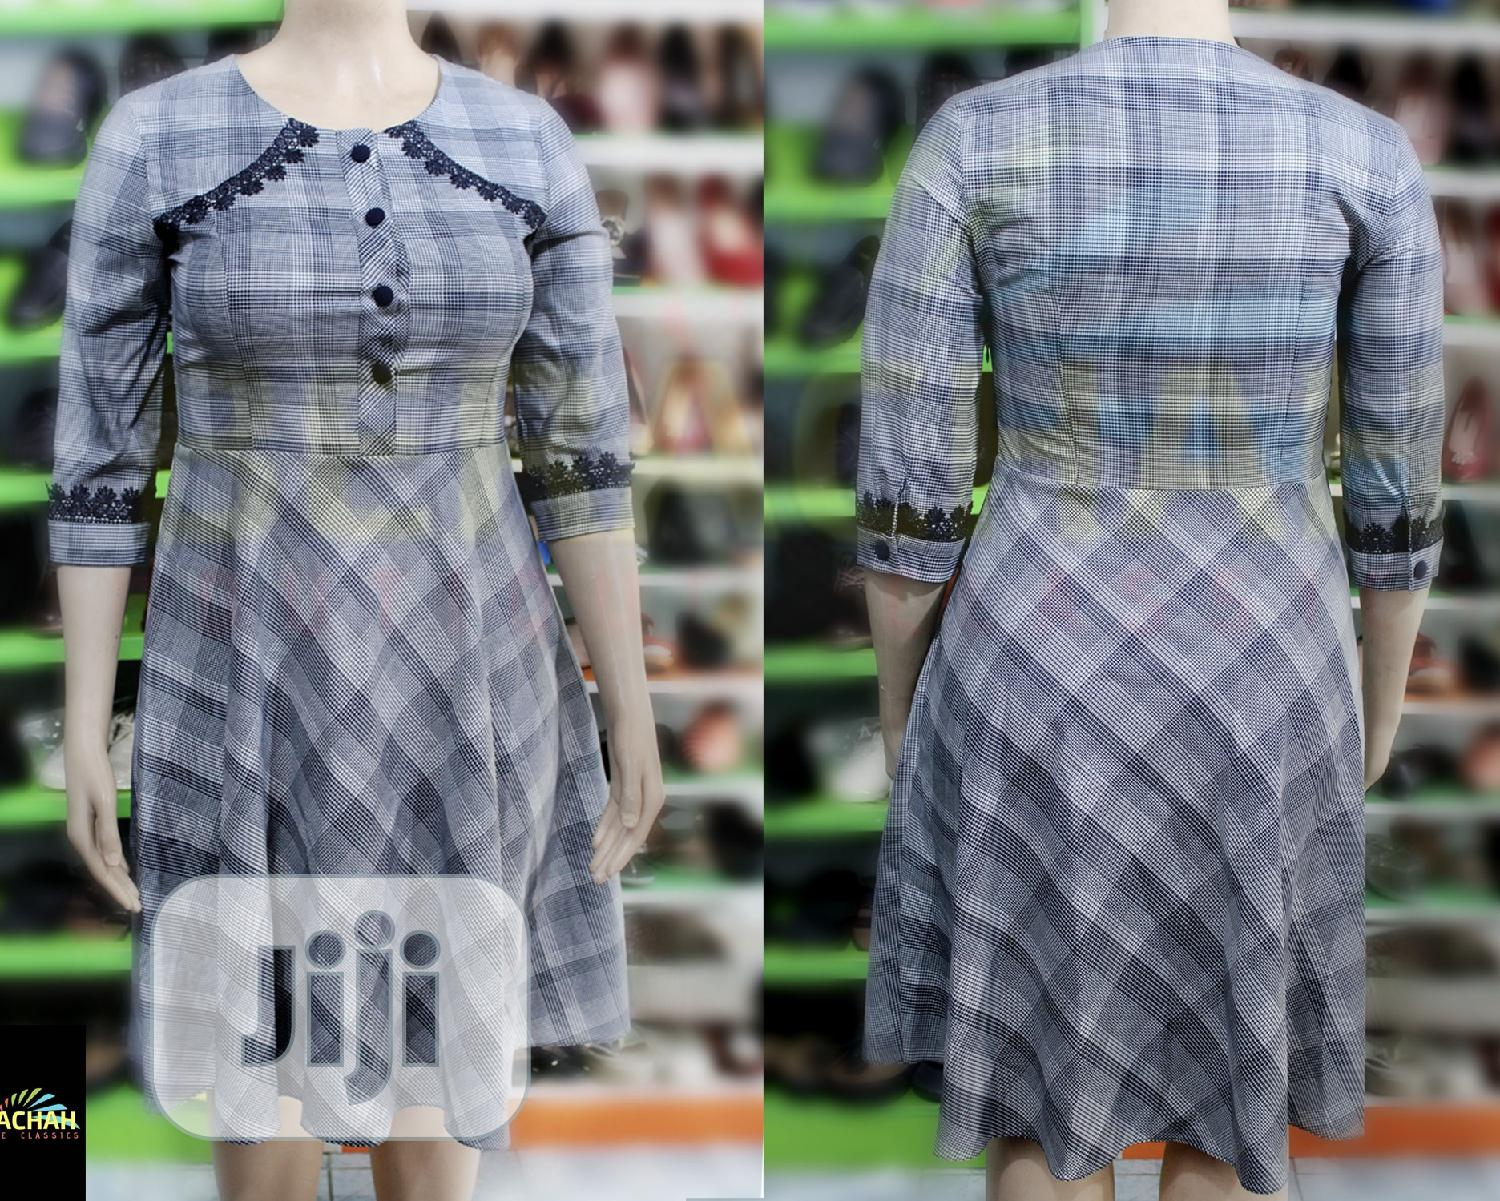 Made in Turkey Dresses | Clothing for sale in Gwarinpa, Abuja (FCT) State, Nigeria